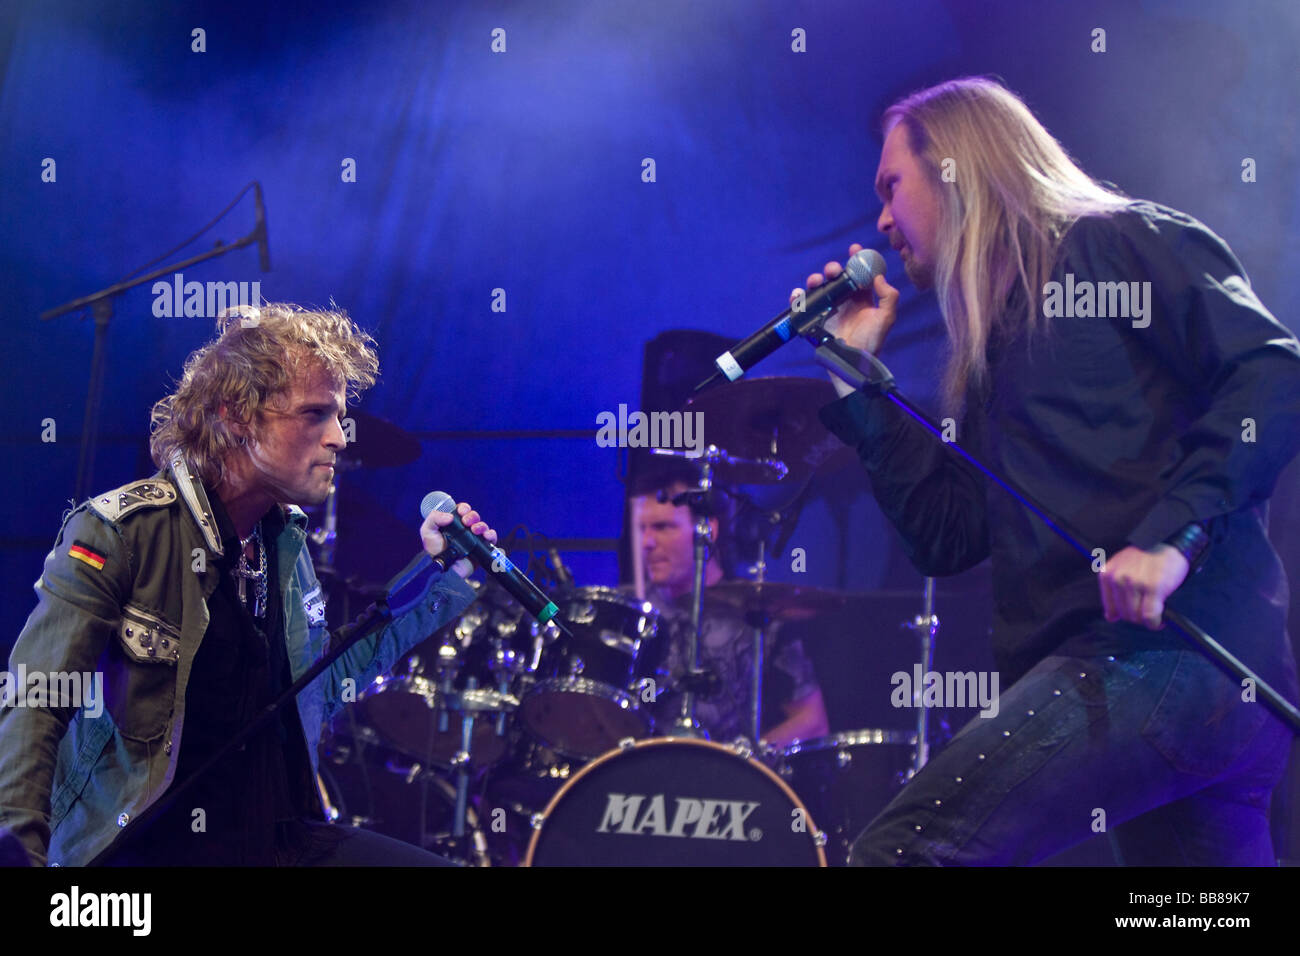 Tobias Sammet, singer and frontman, and Jorn Lande, ex-Masterplan, of the German power-metal band Avantasia, performing - Stock Image